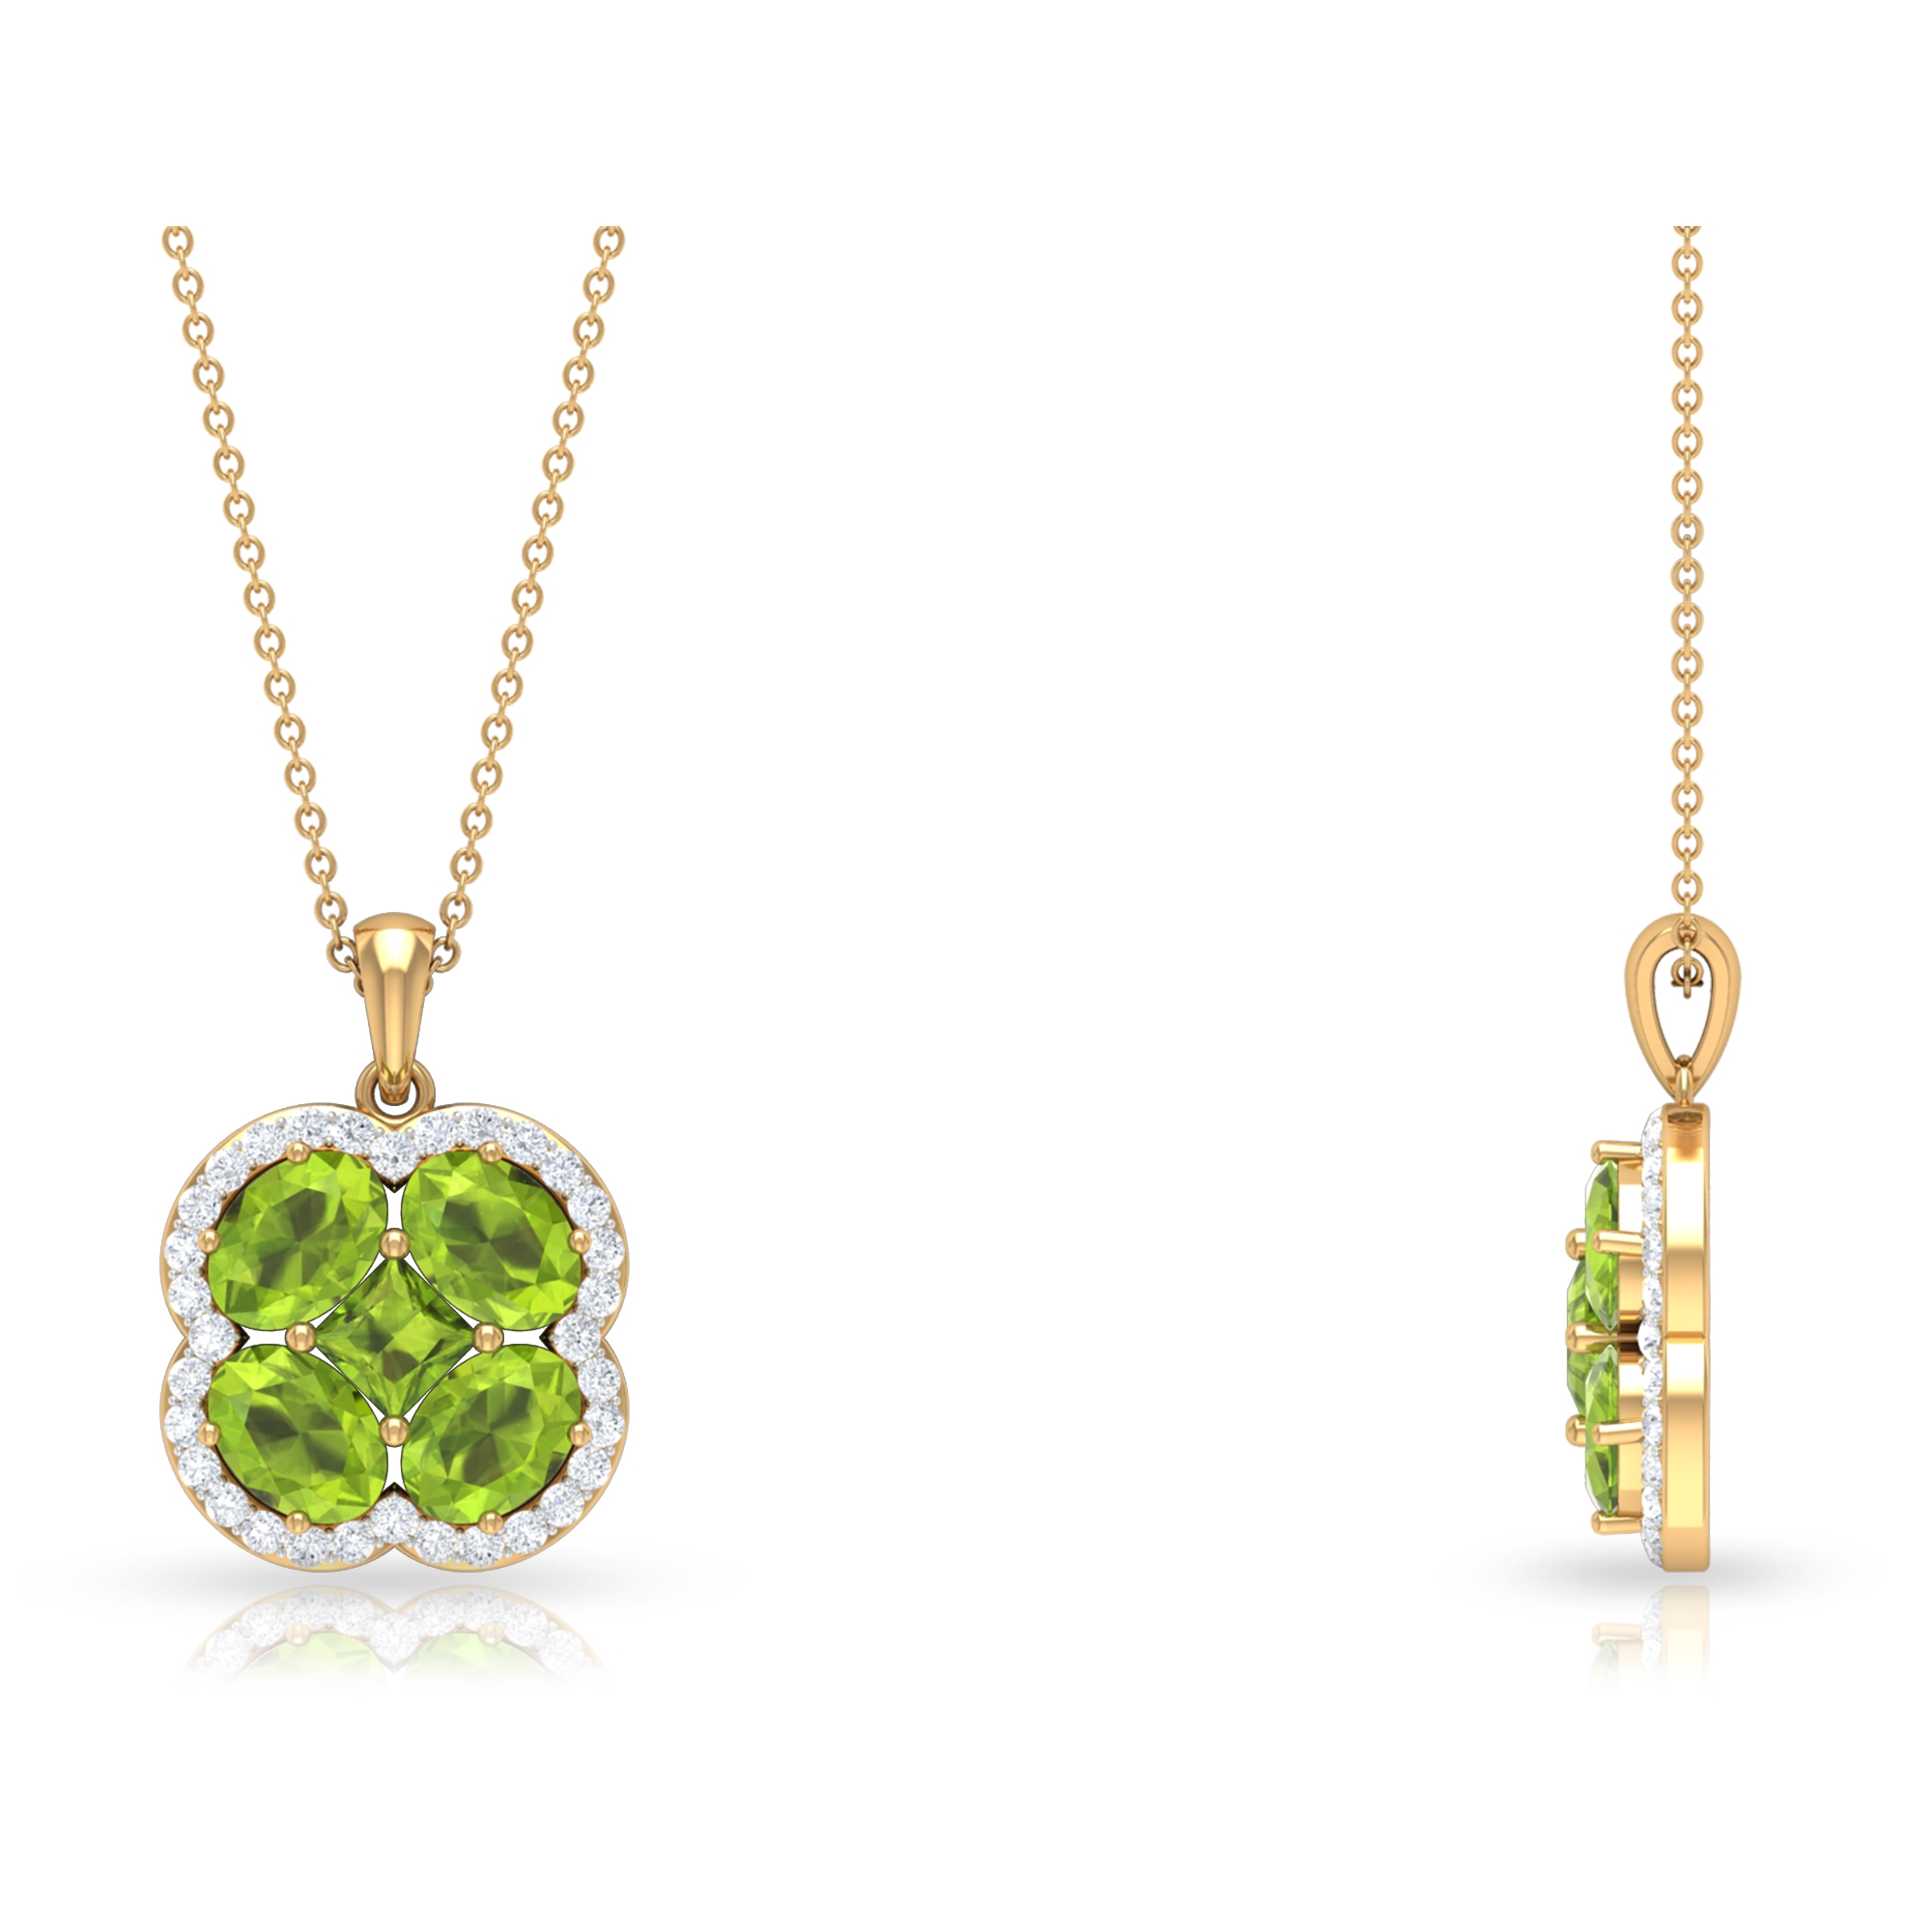 4.25 CT Classic Peridot and Diamond Floral Cluster Necklace